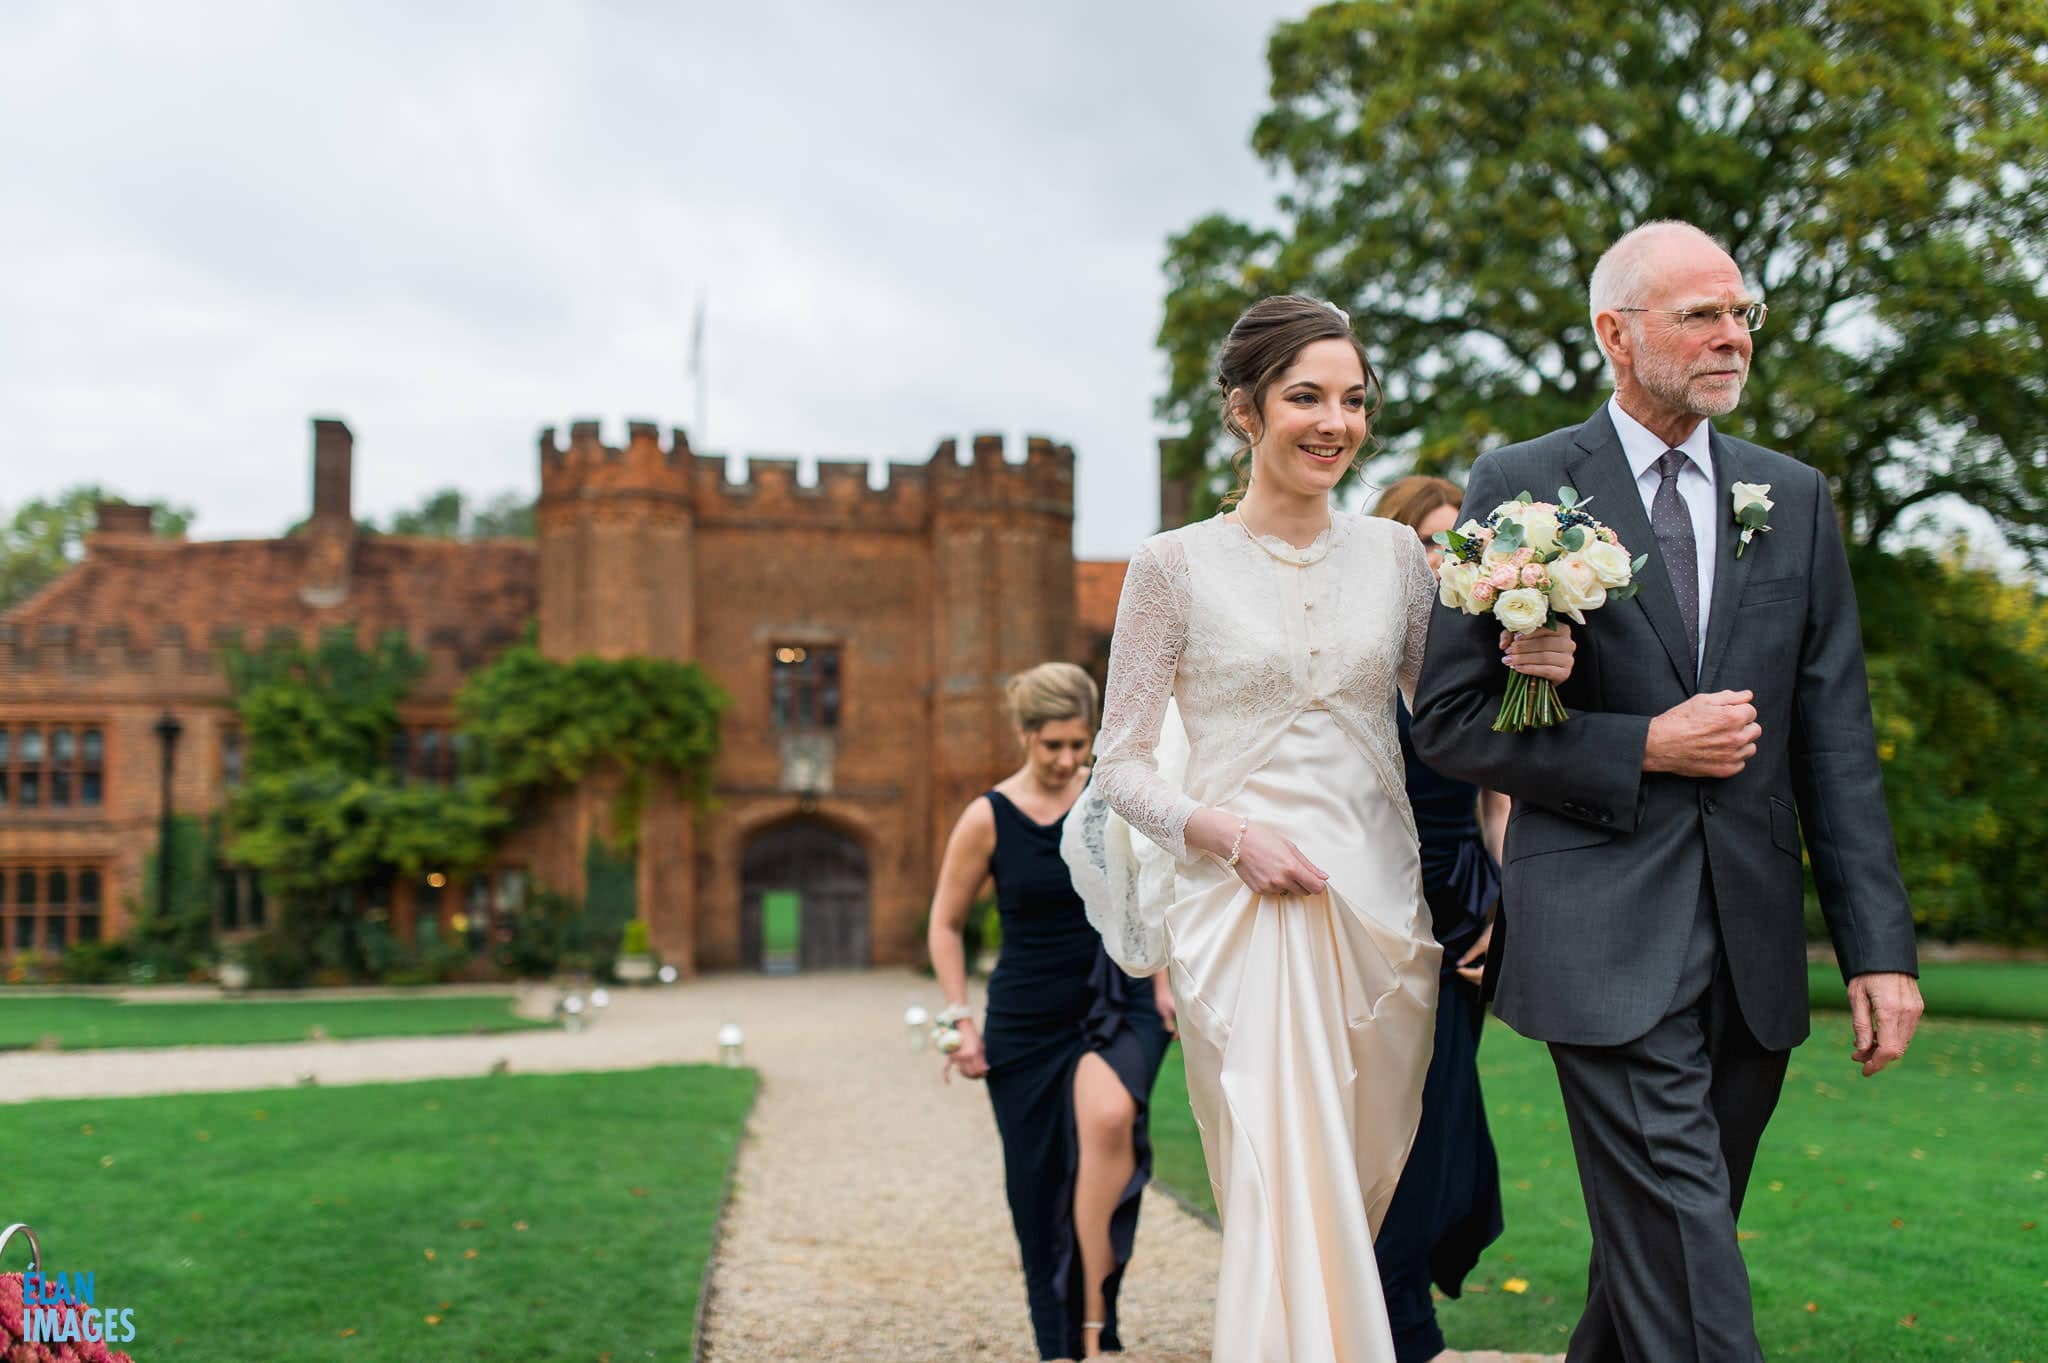 Wedding at Leez Priory, Essex 12